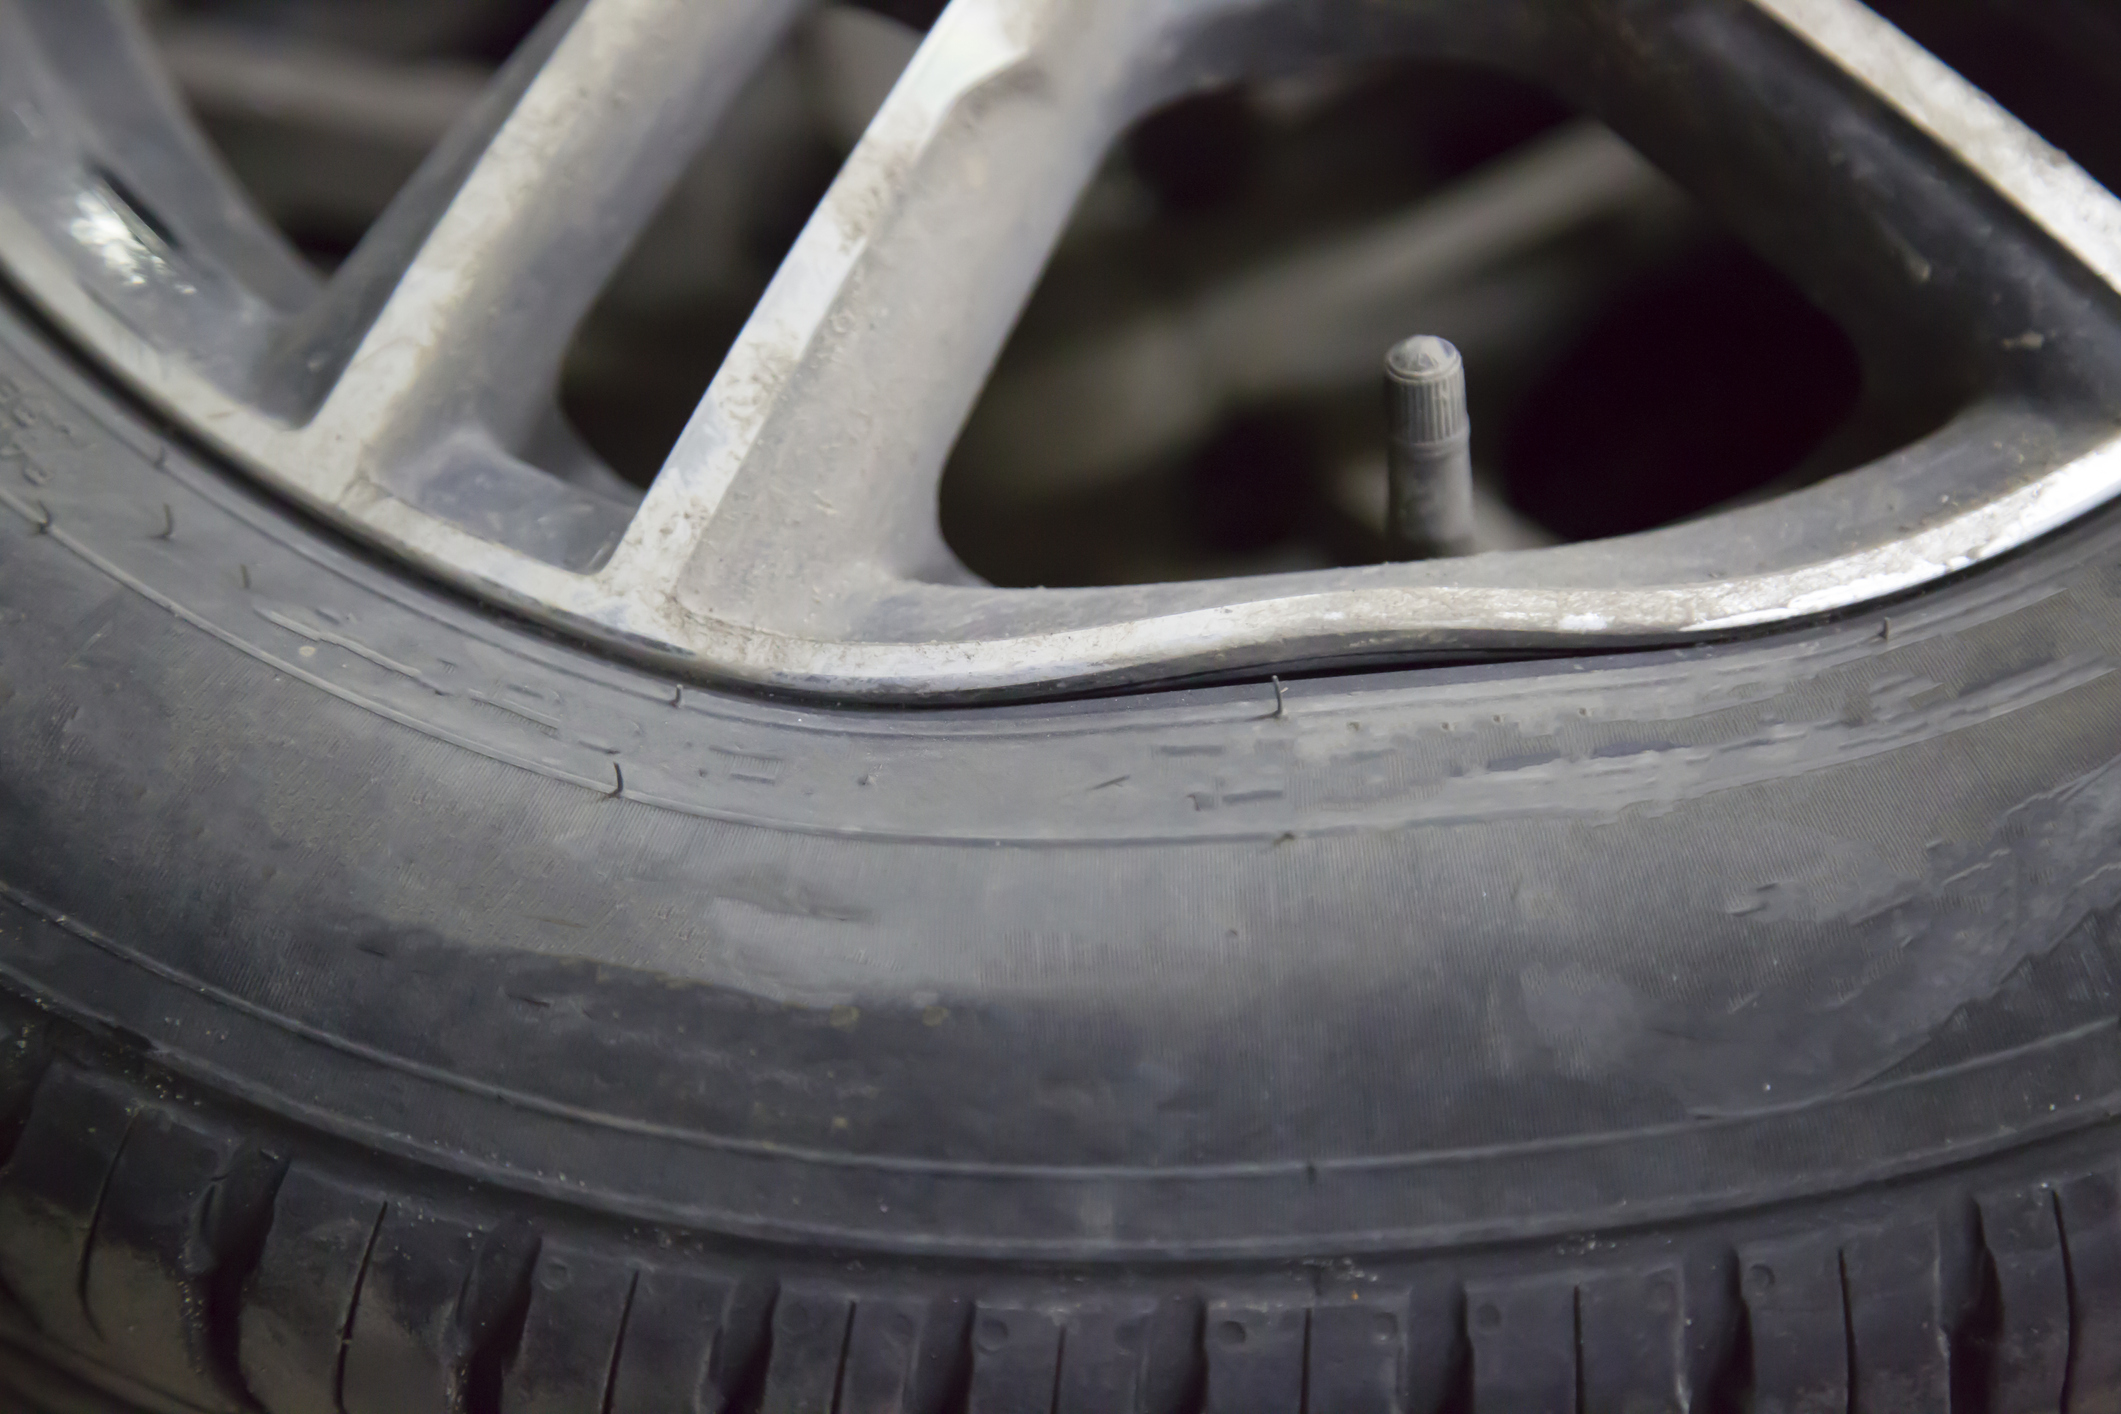 Damaged disc and tire of the car